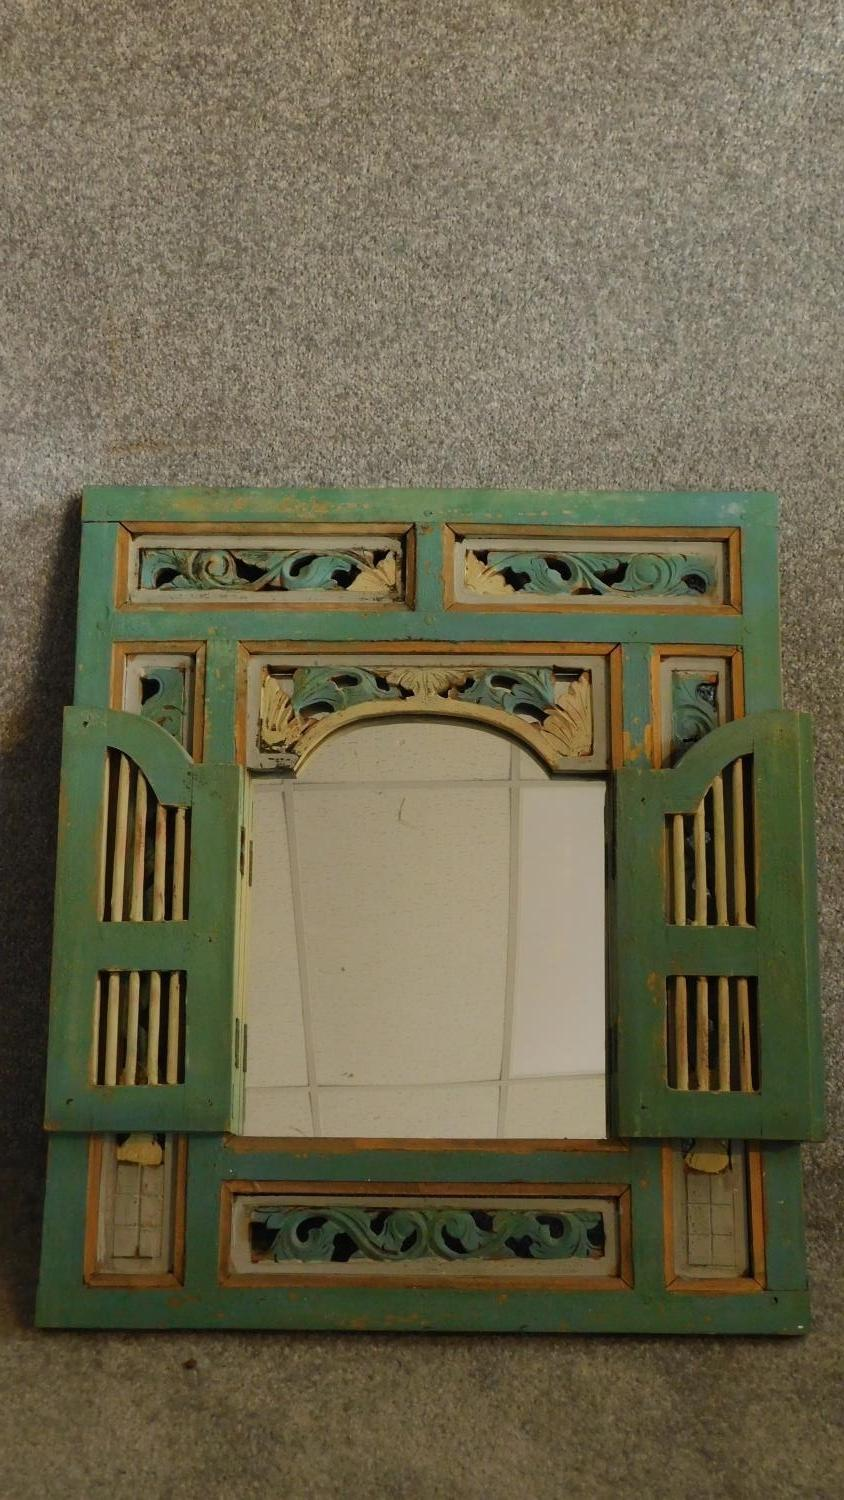 Lot 22 - A 19th Century Javanese decorative wall mounted mirror with doors and carved floral together with